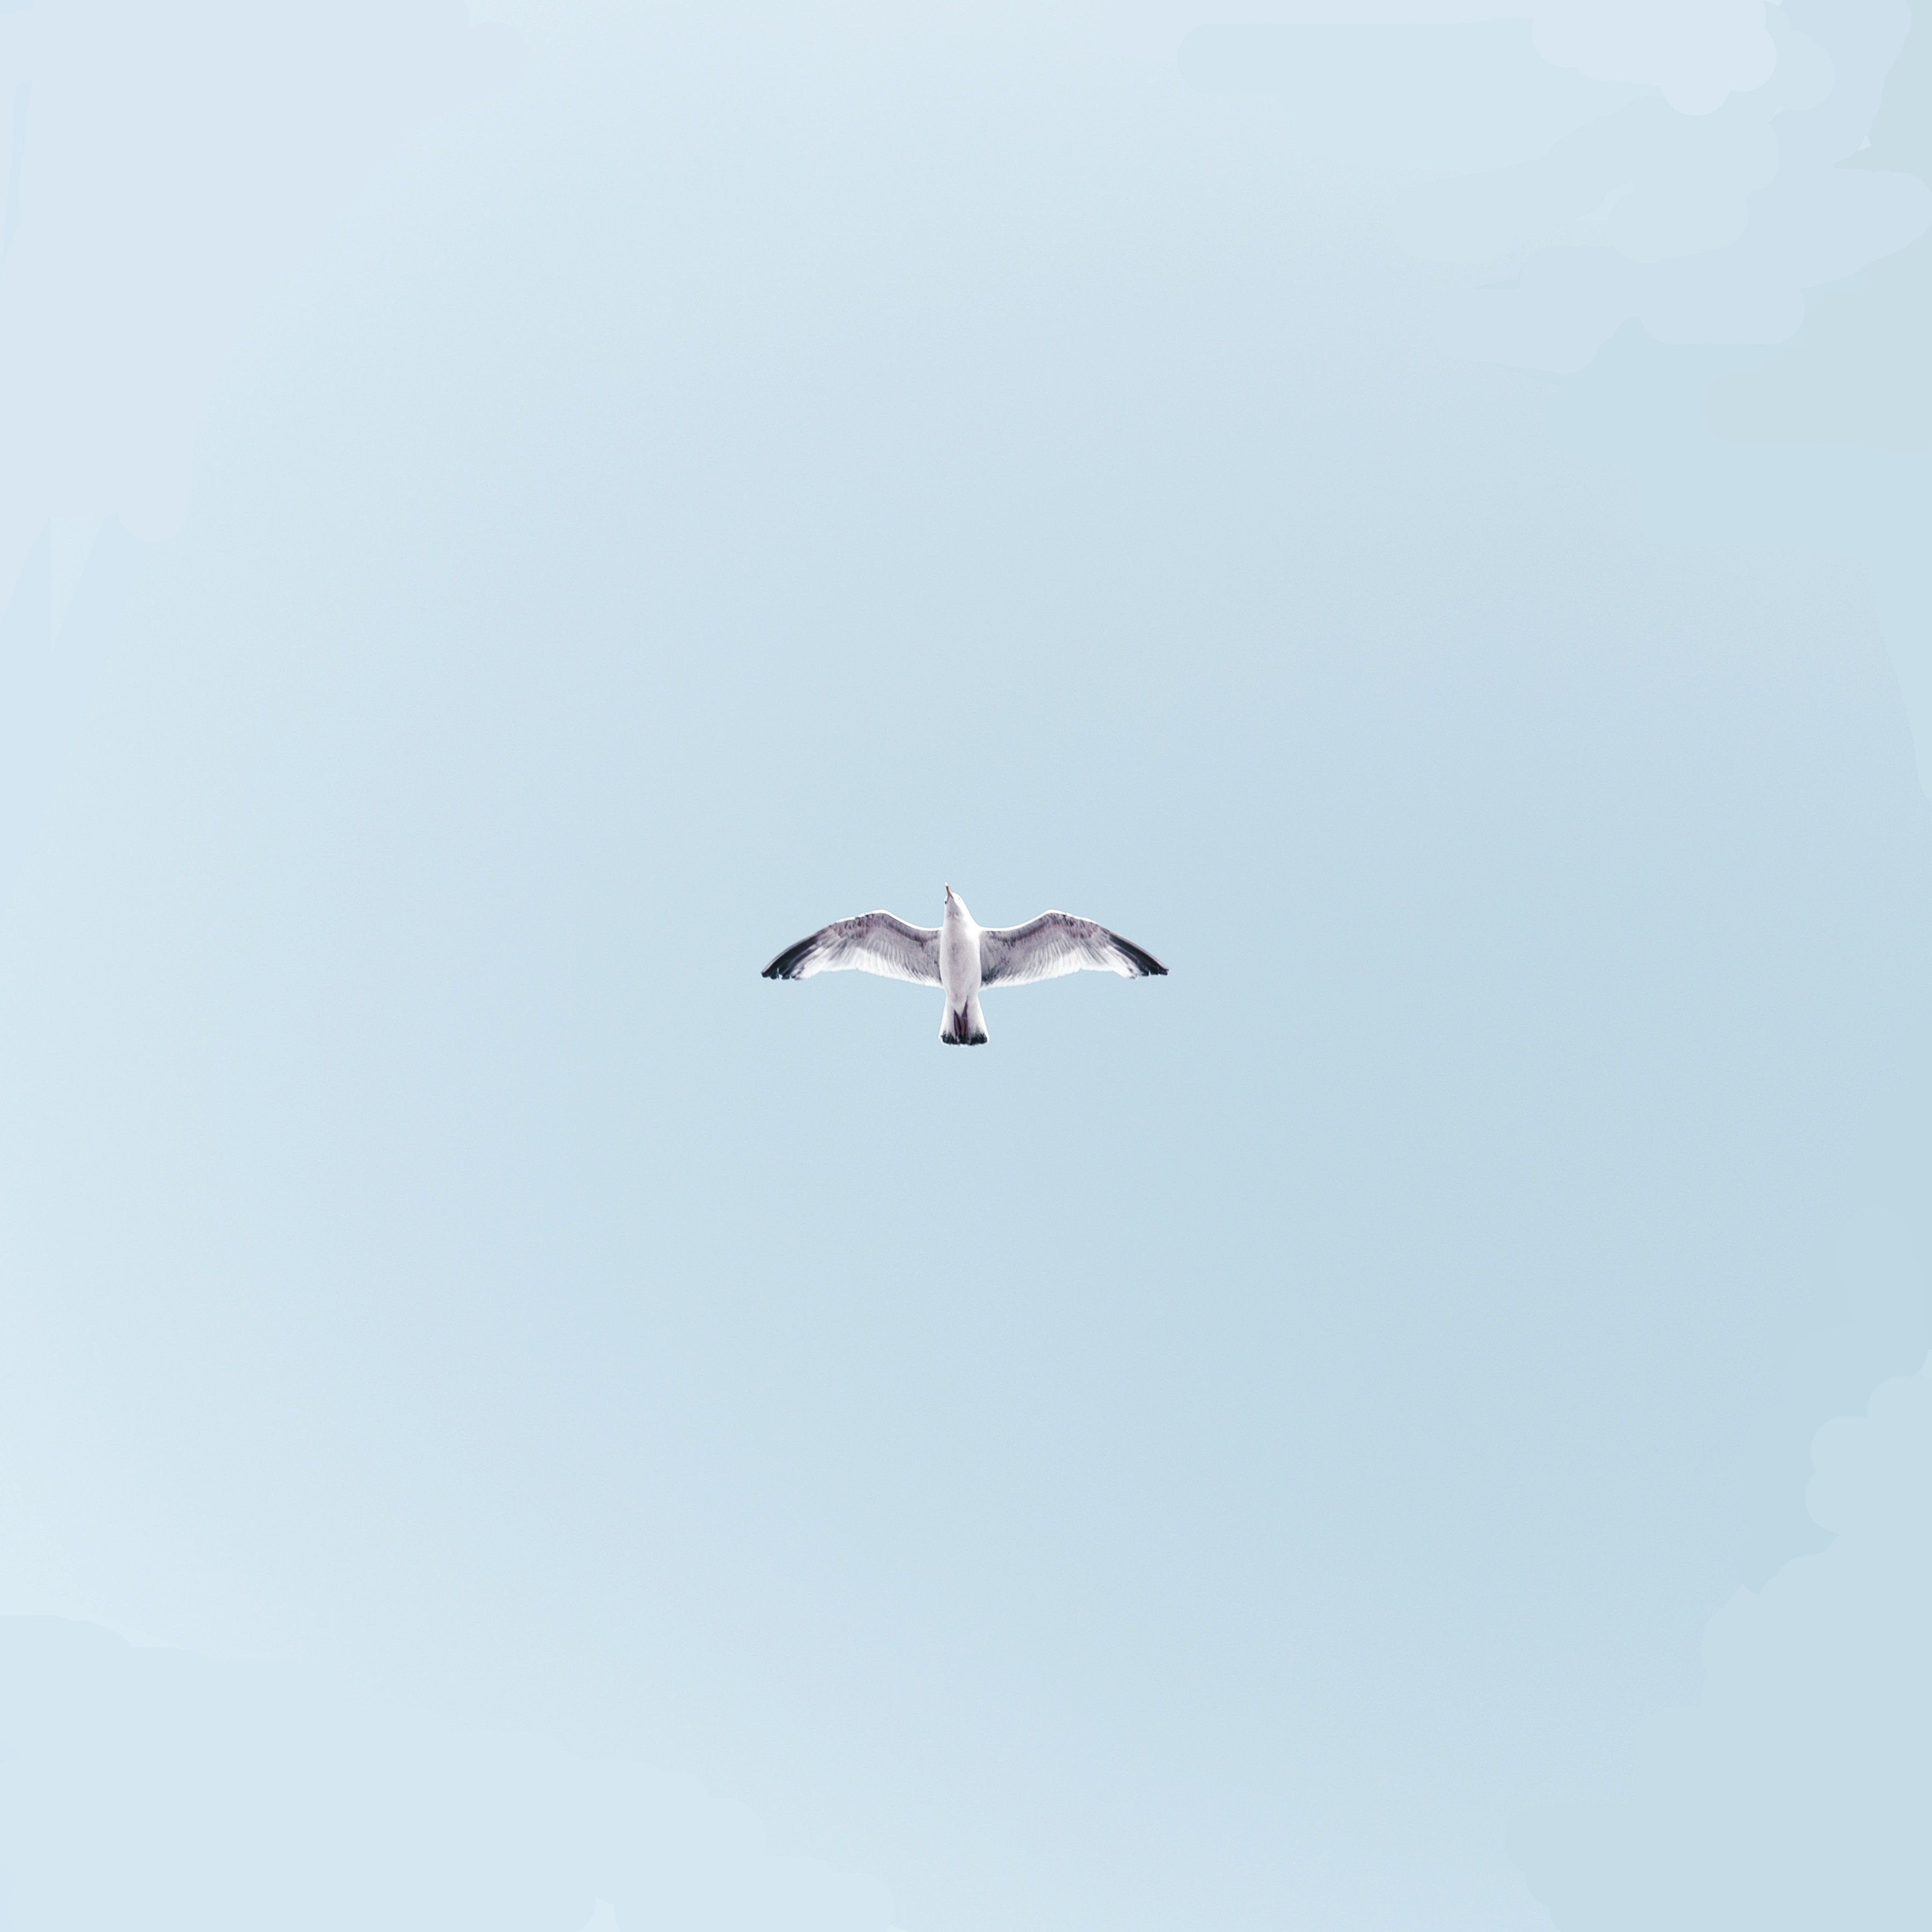 156077 download wallpaper Minimalism, Gull, Seagull, Bird, Flight, Sky, Wings, Sweep, Wave screensavers and pictures for free